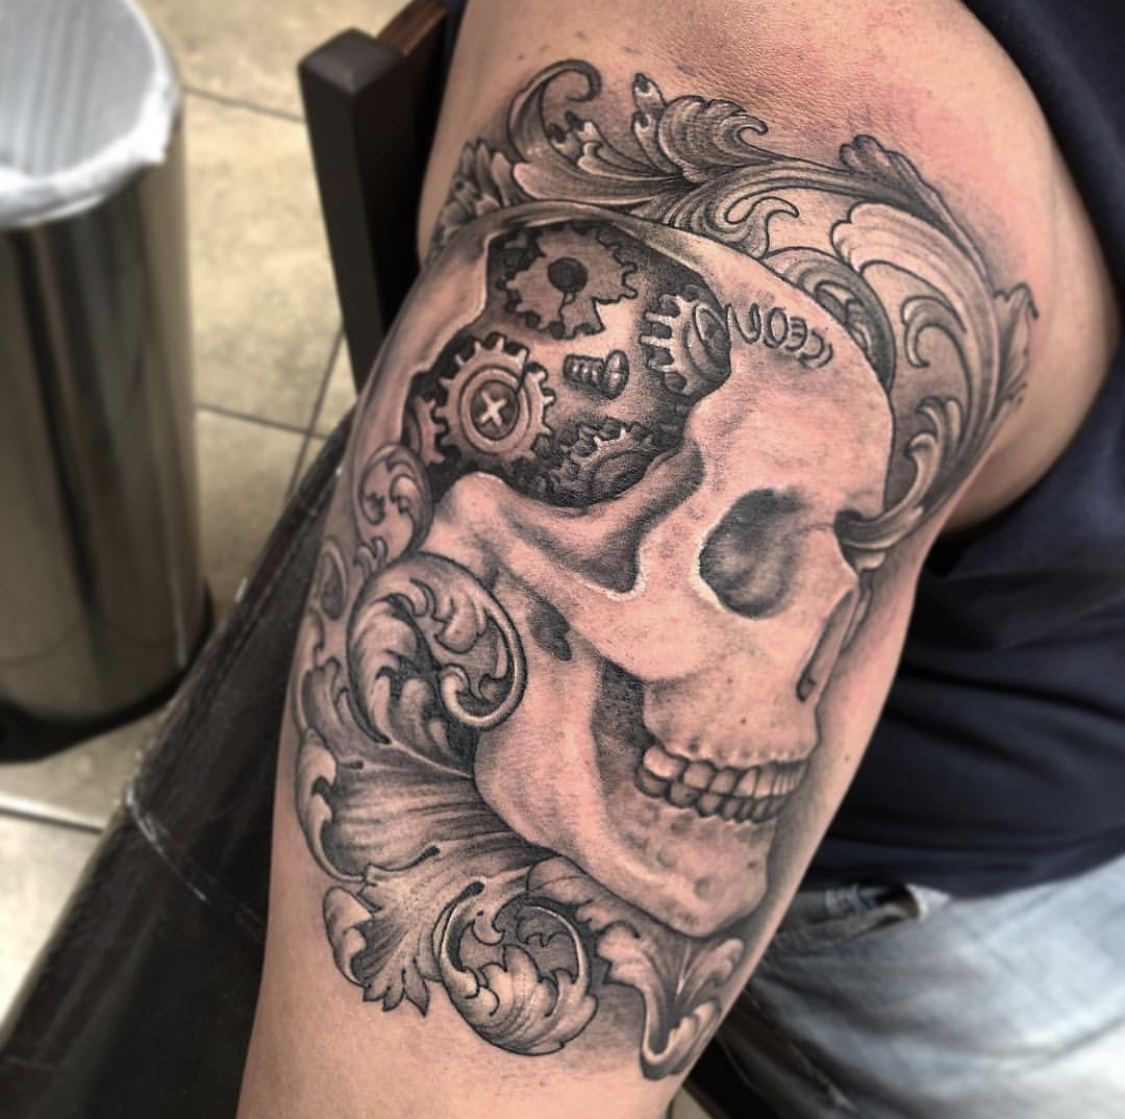 Artistic Impressions Tattoo – Tyler Ideas And Designs